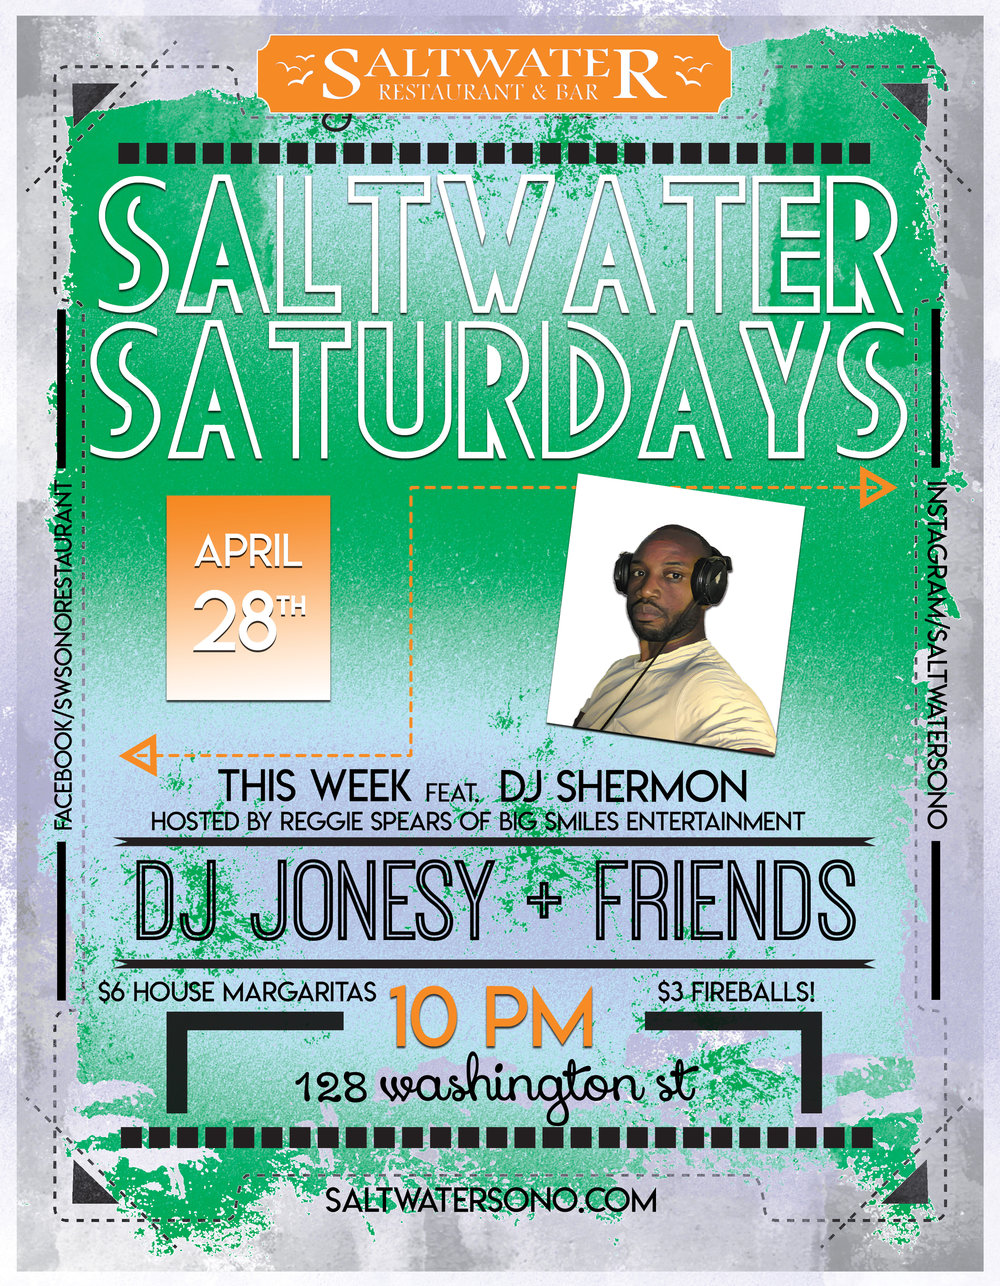 saltwater-saturdays-JONESYapril28.jpg